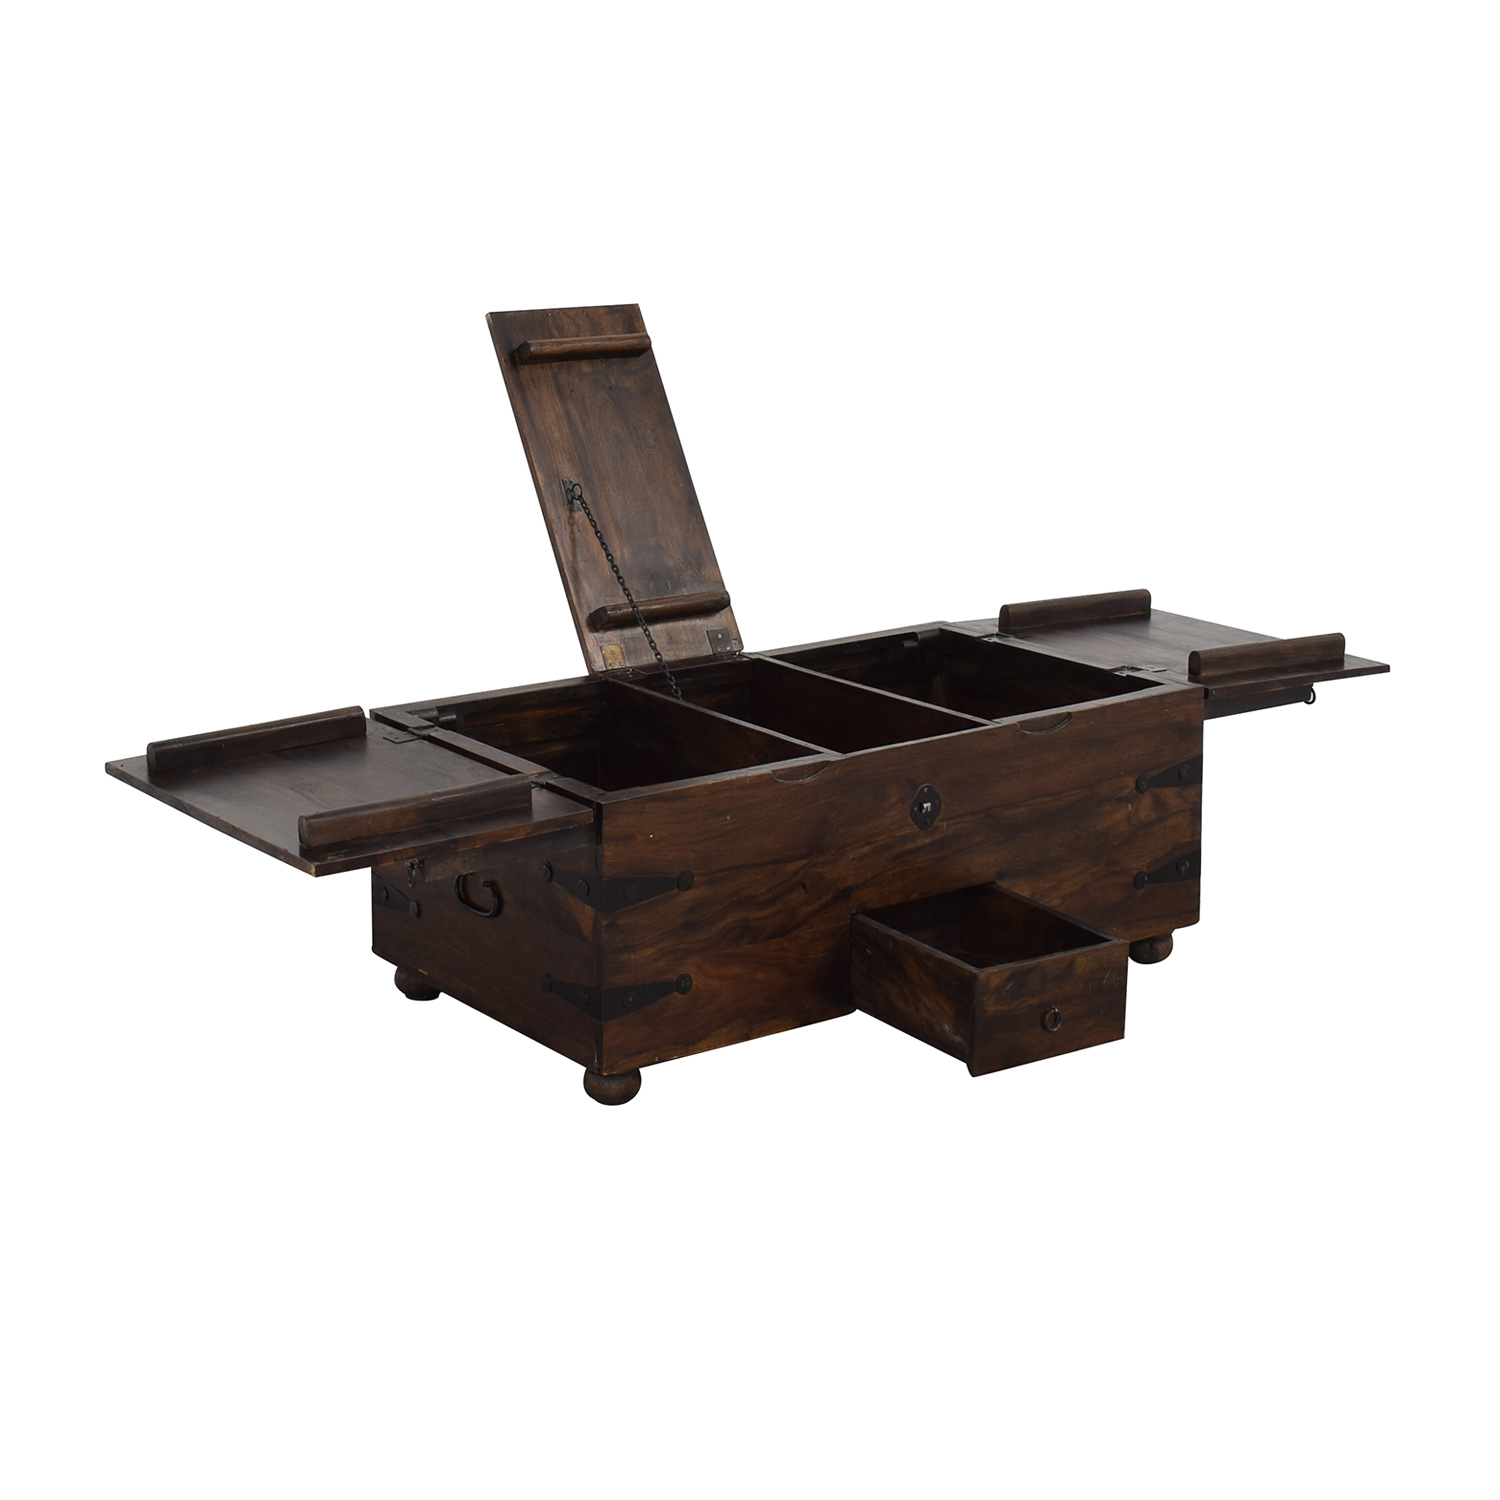 shop Vintage Storage Trunk or Coffee Table  Trunks